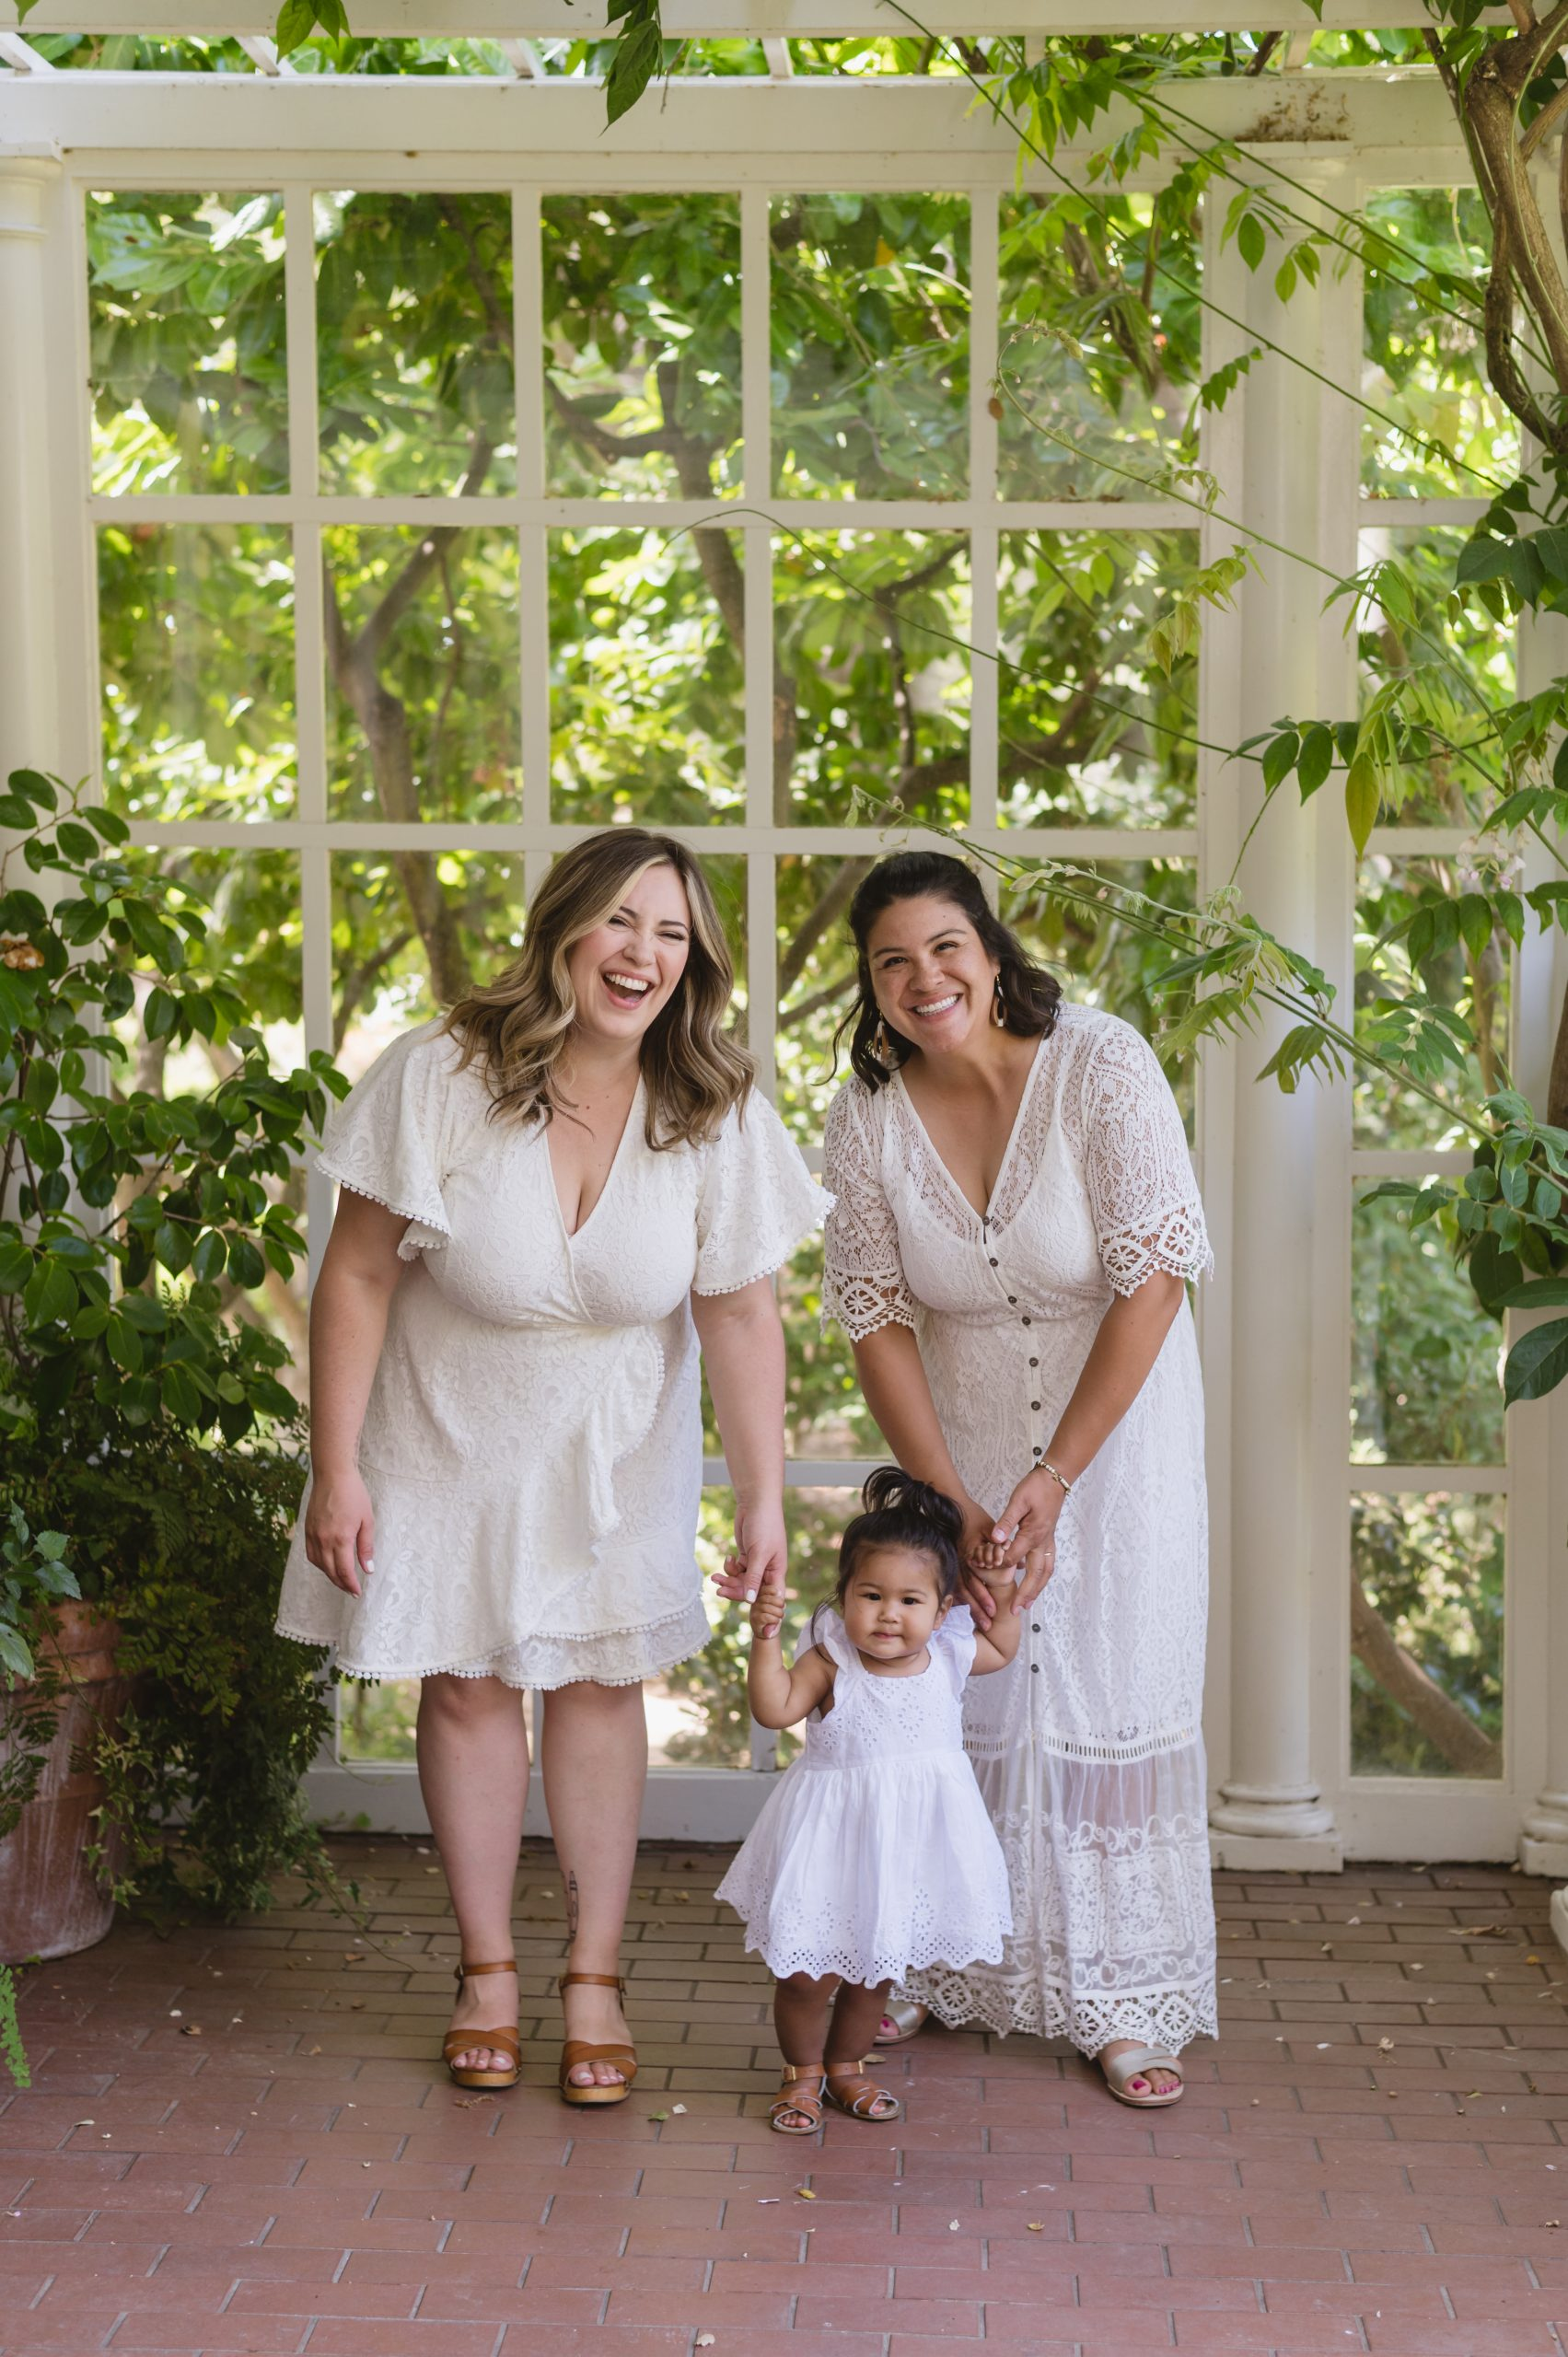 FAMILY PORTRAITS: How to prepare, What to Wear, and everything in between